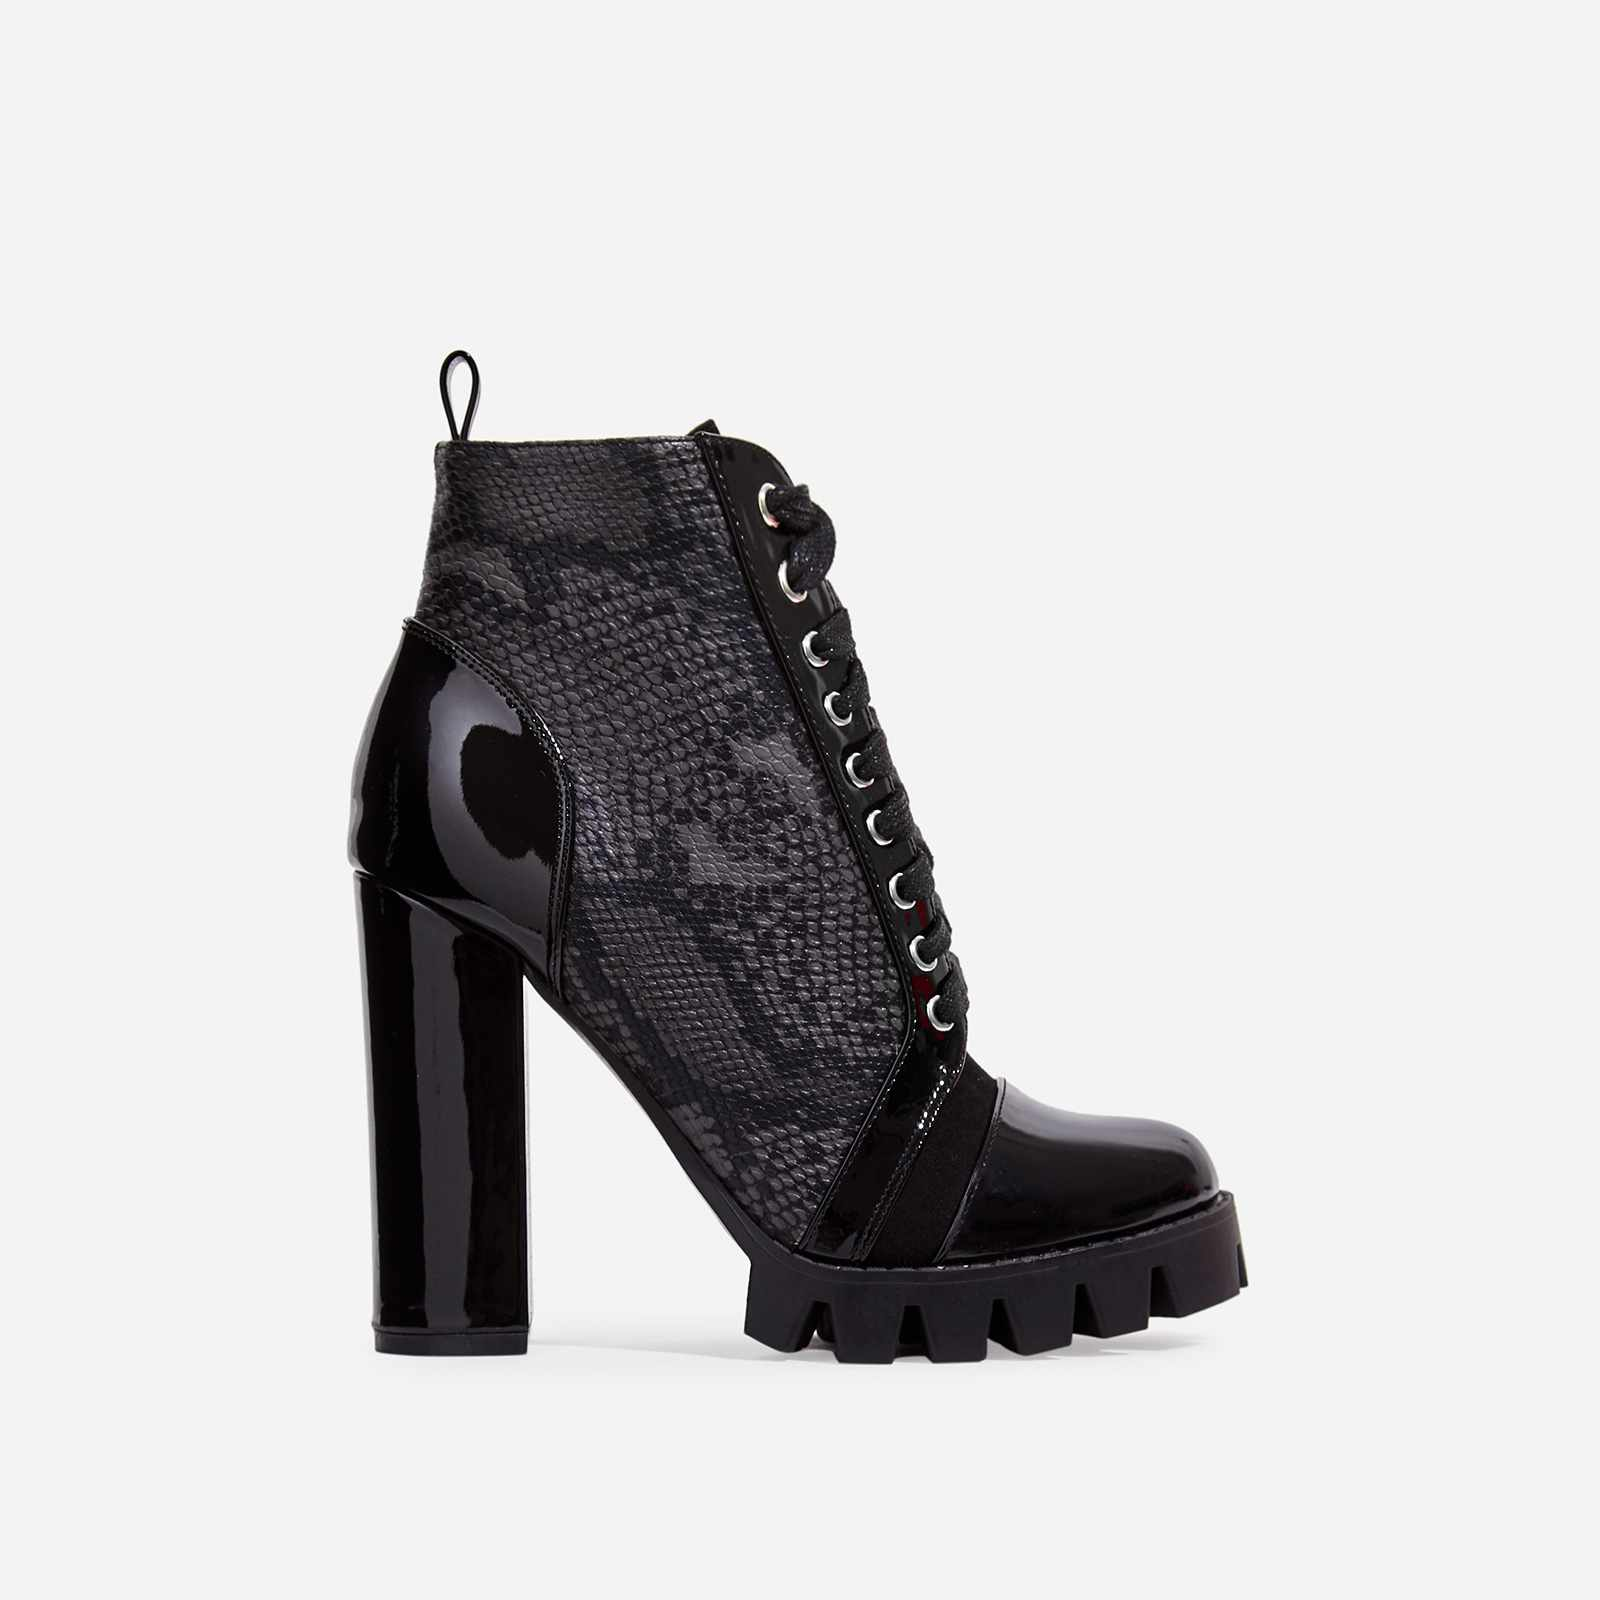 Urban Lace Up Cleated Sole Ankle Boot In Black Snake Print Faux Leather And Patent